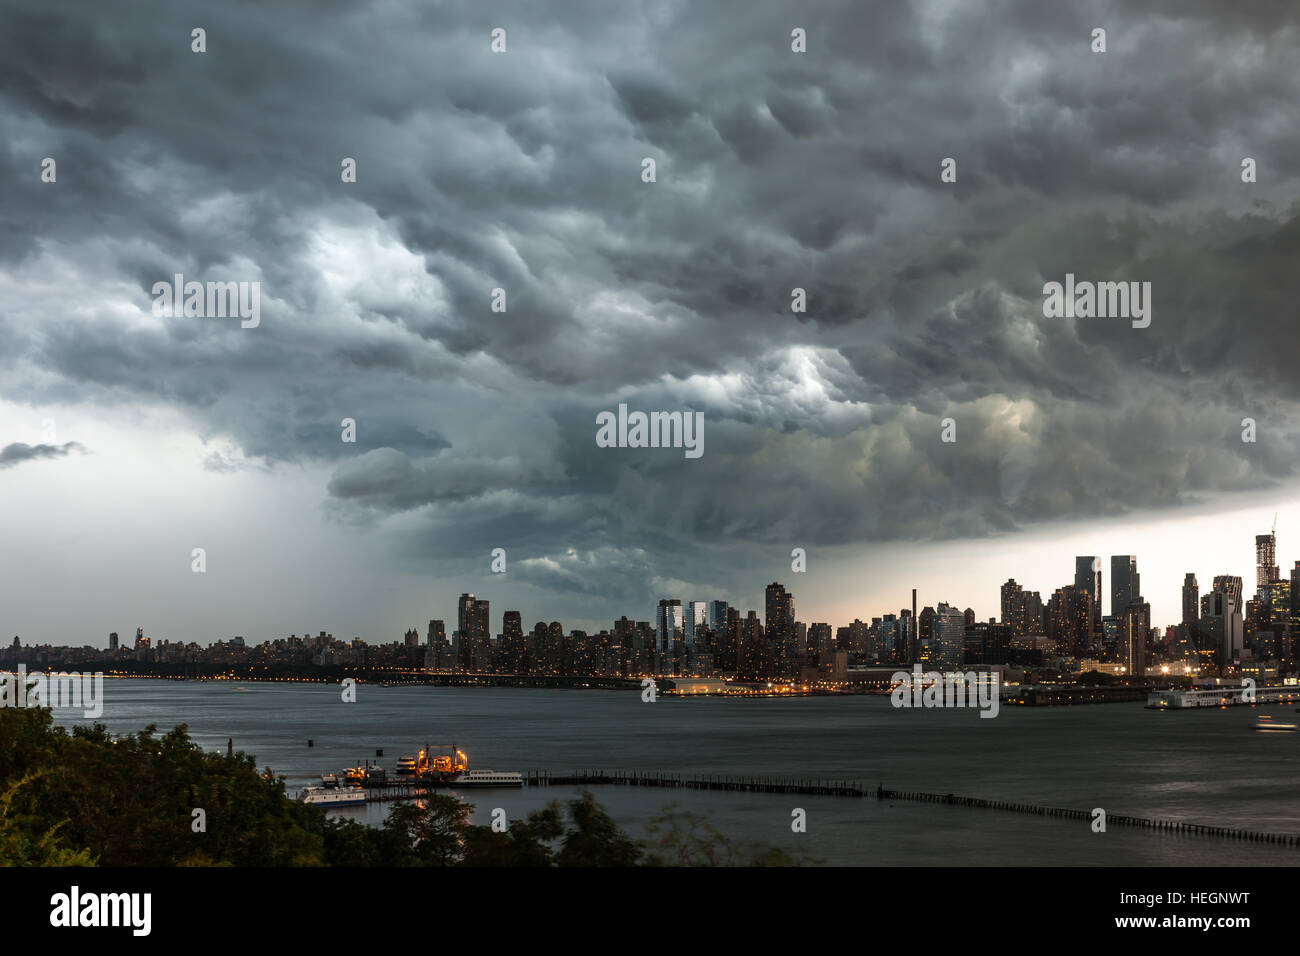 Ominous cumulonimbus clouds form over Manhattan and the Hudson River prior to a summer thunderstorm in New York - Stock Image